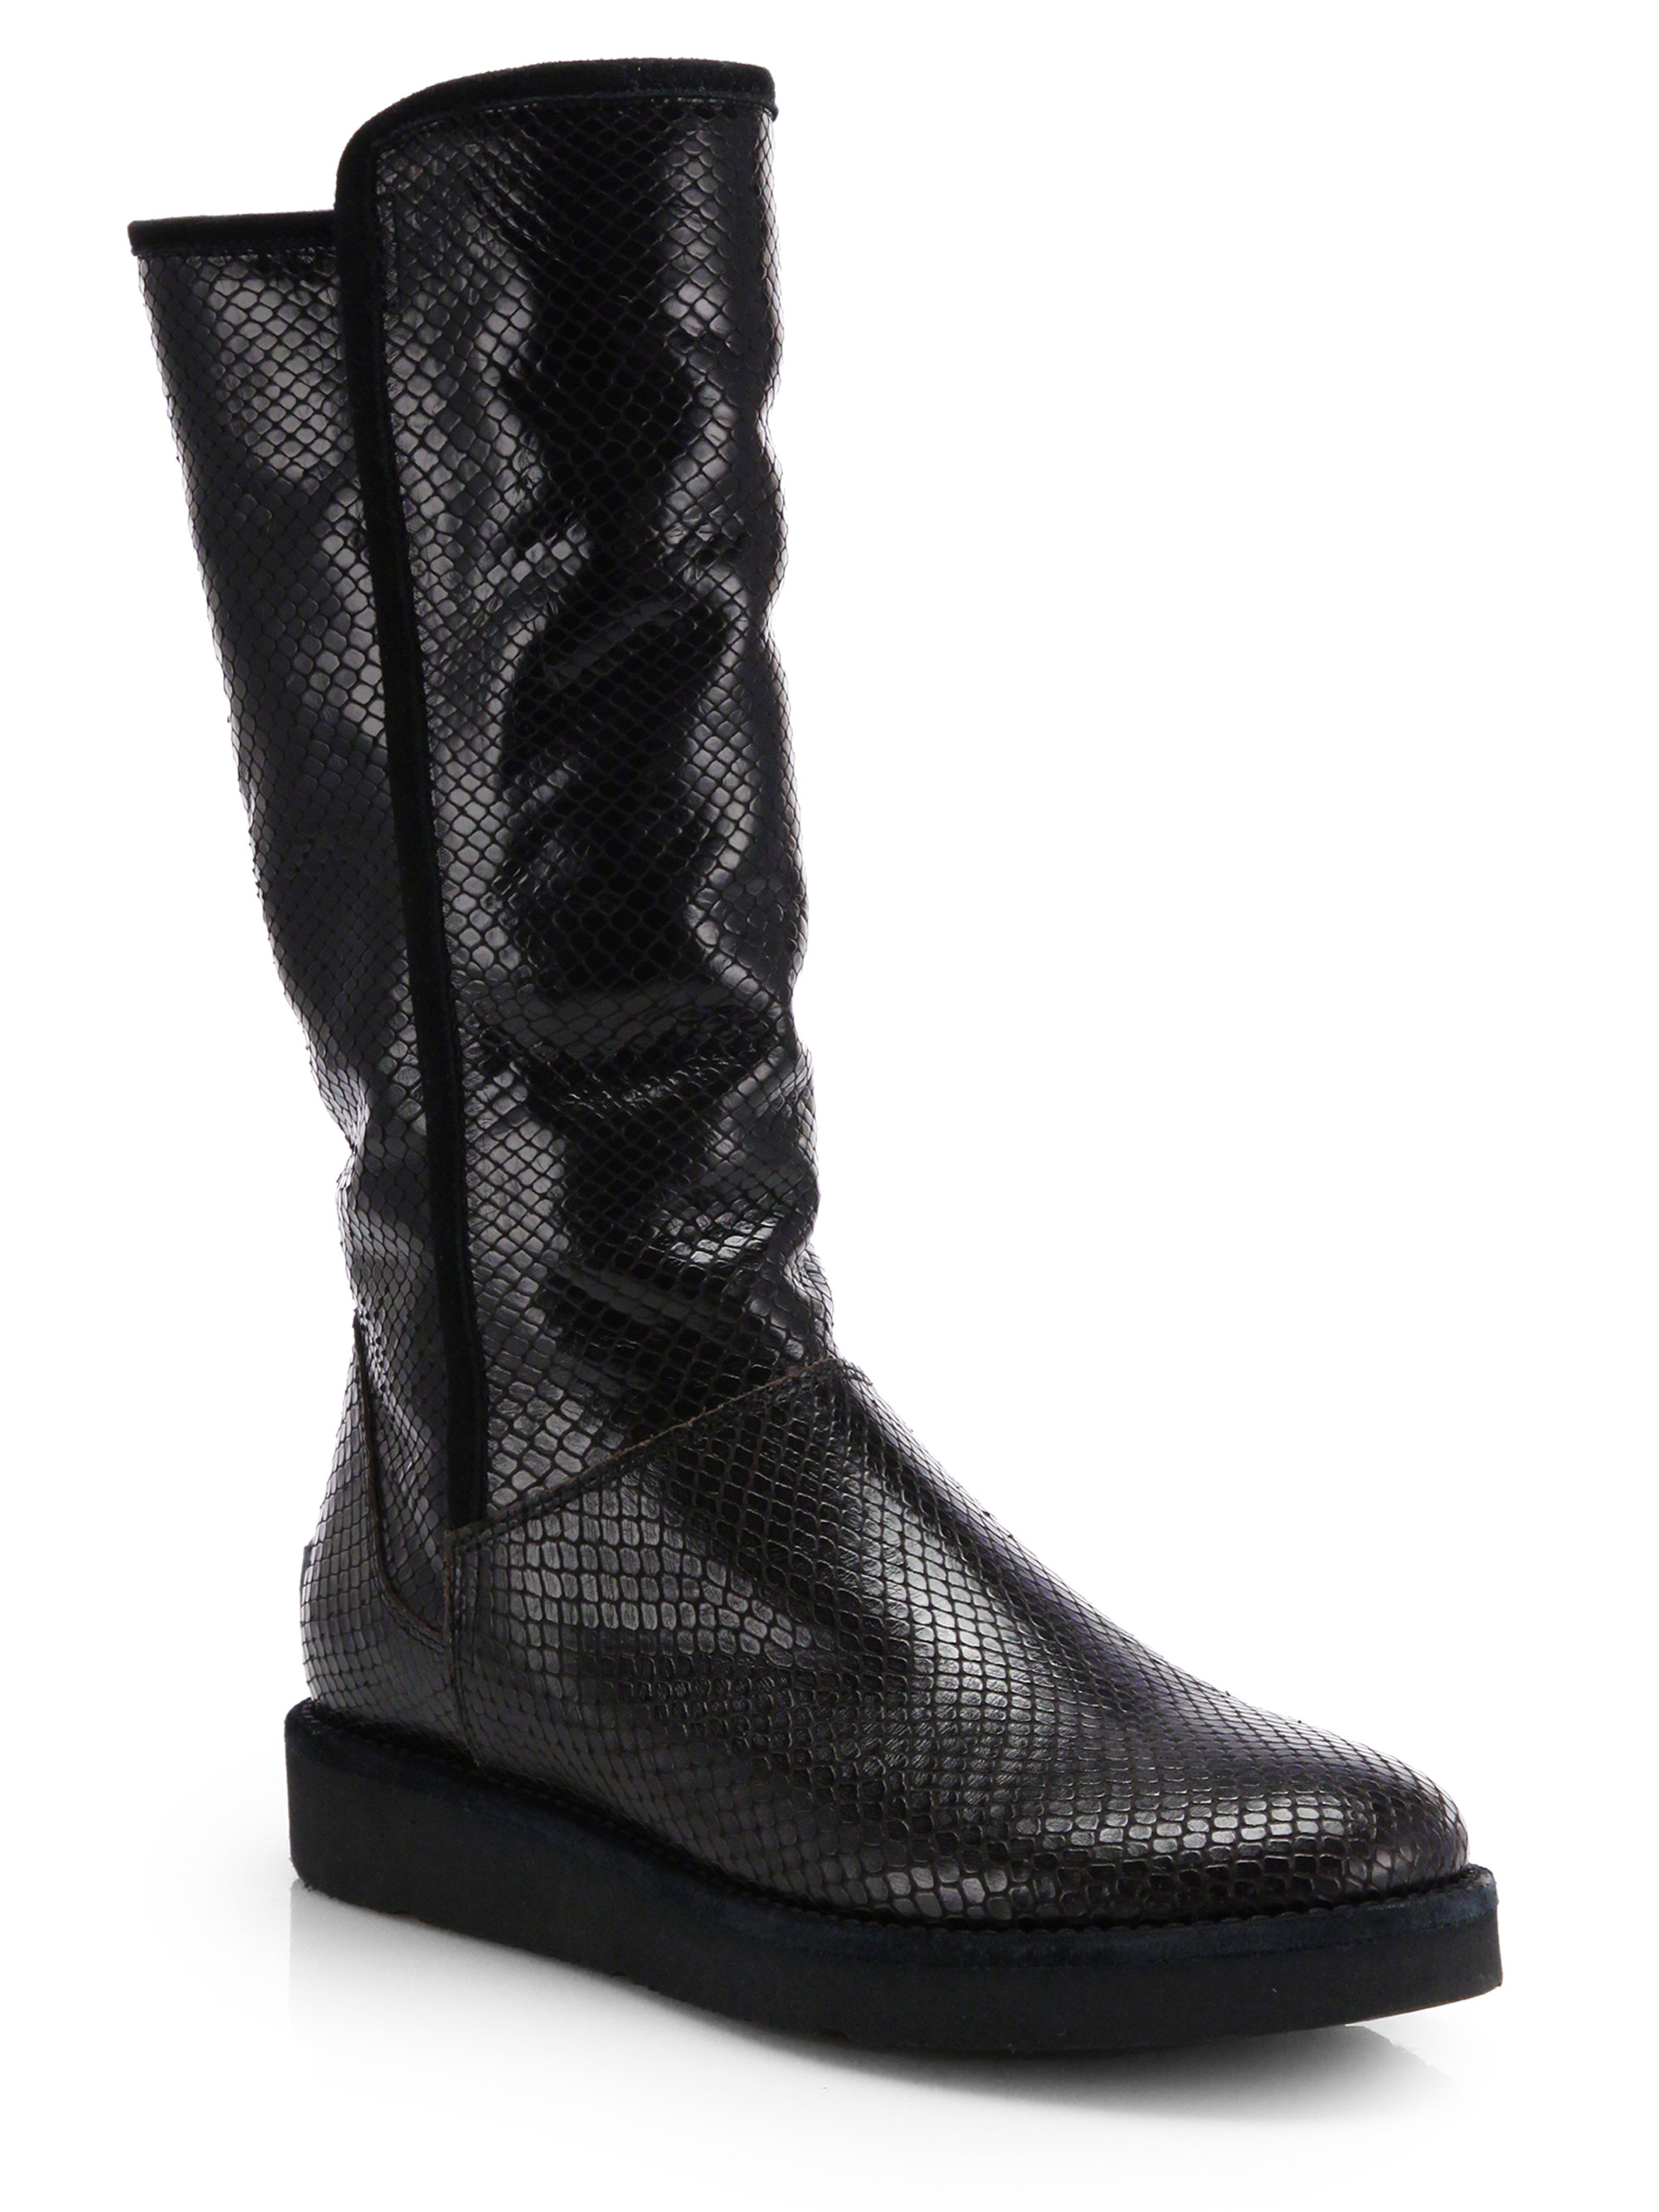 Lyst Ugg Abree Snake Embossed Leather Mid Calf Boots In